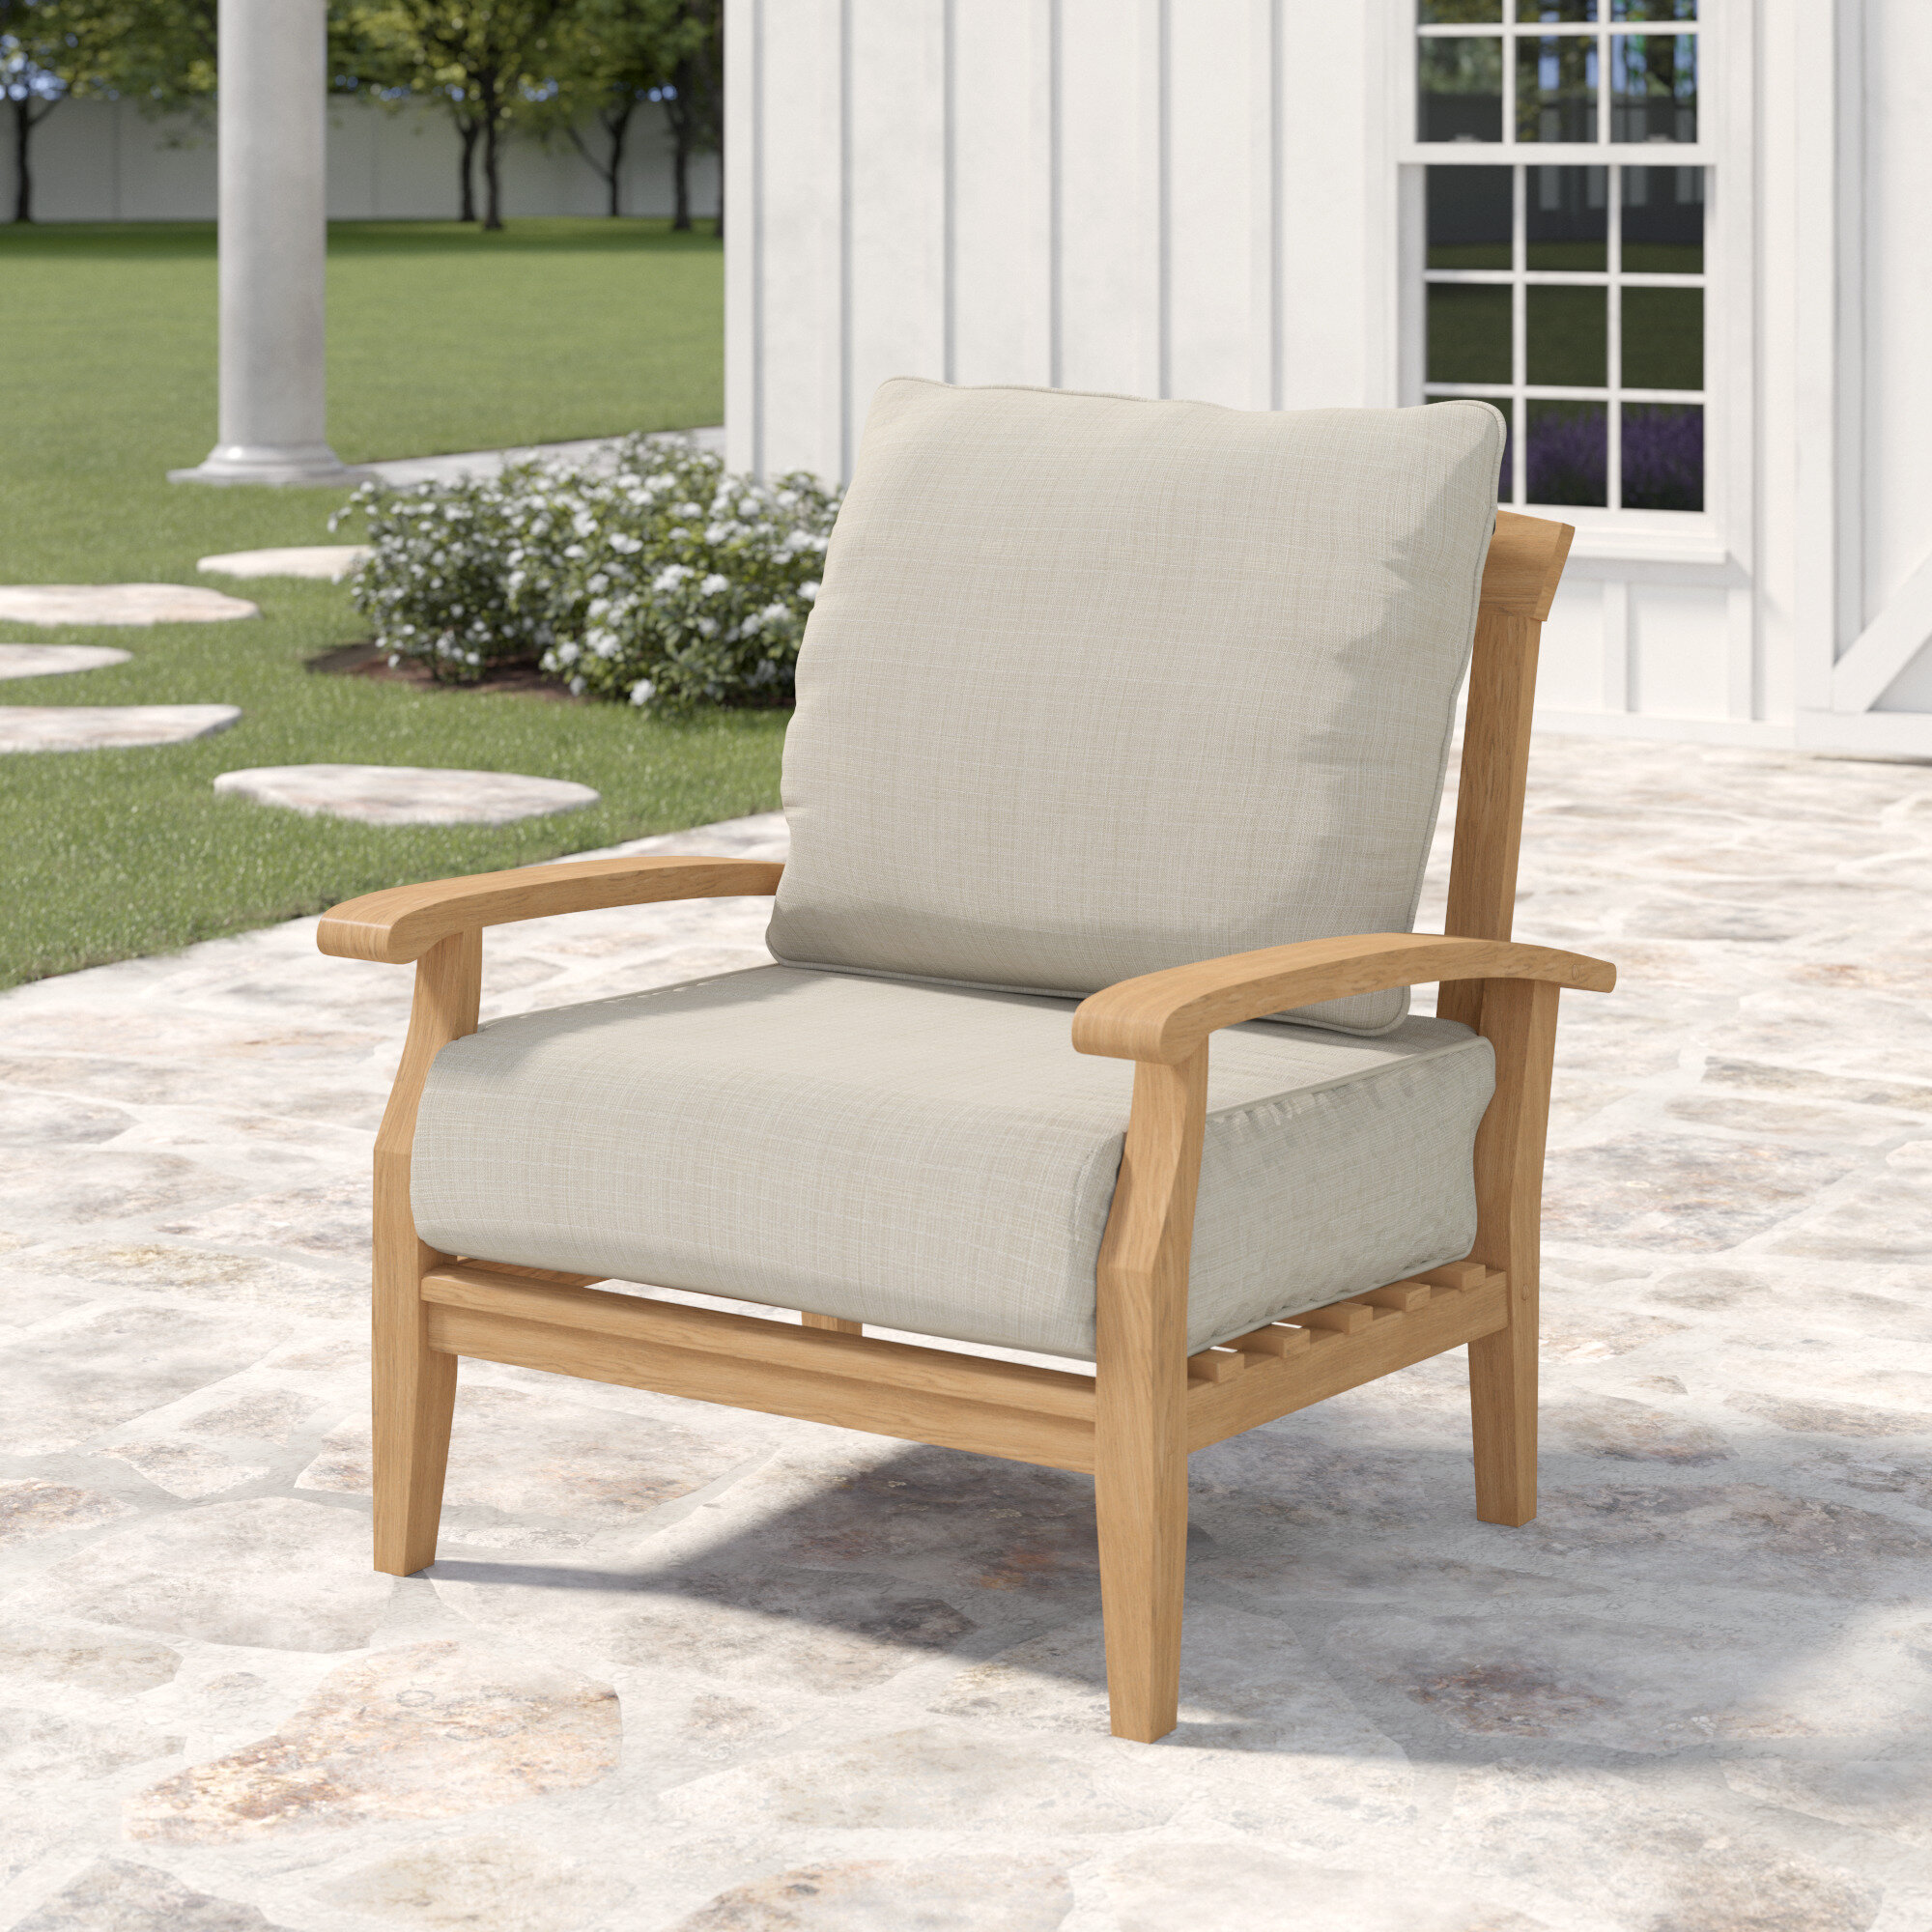 Summerton Teak Patio Chair With Cushions